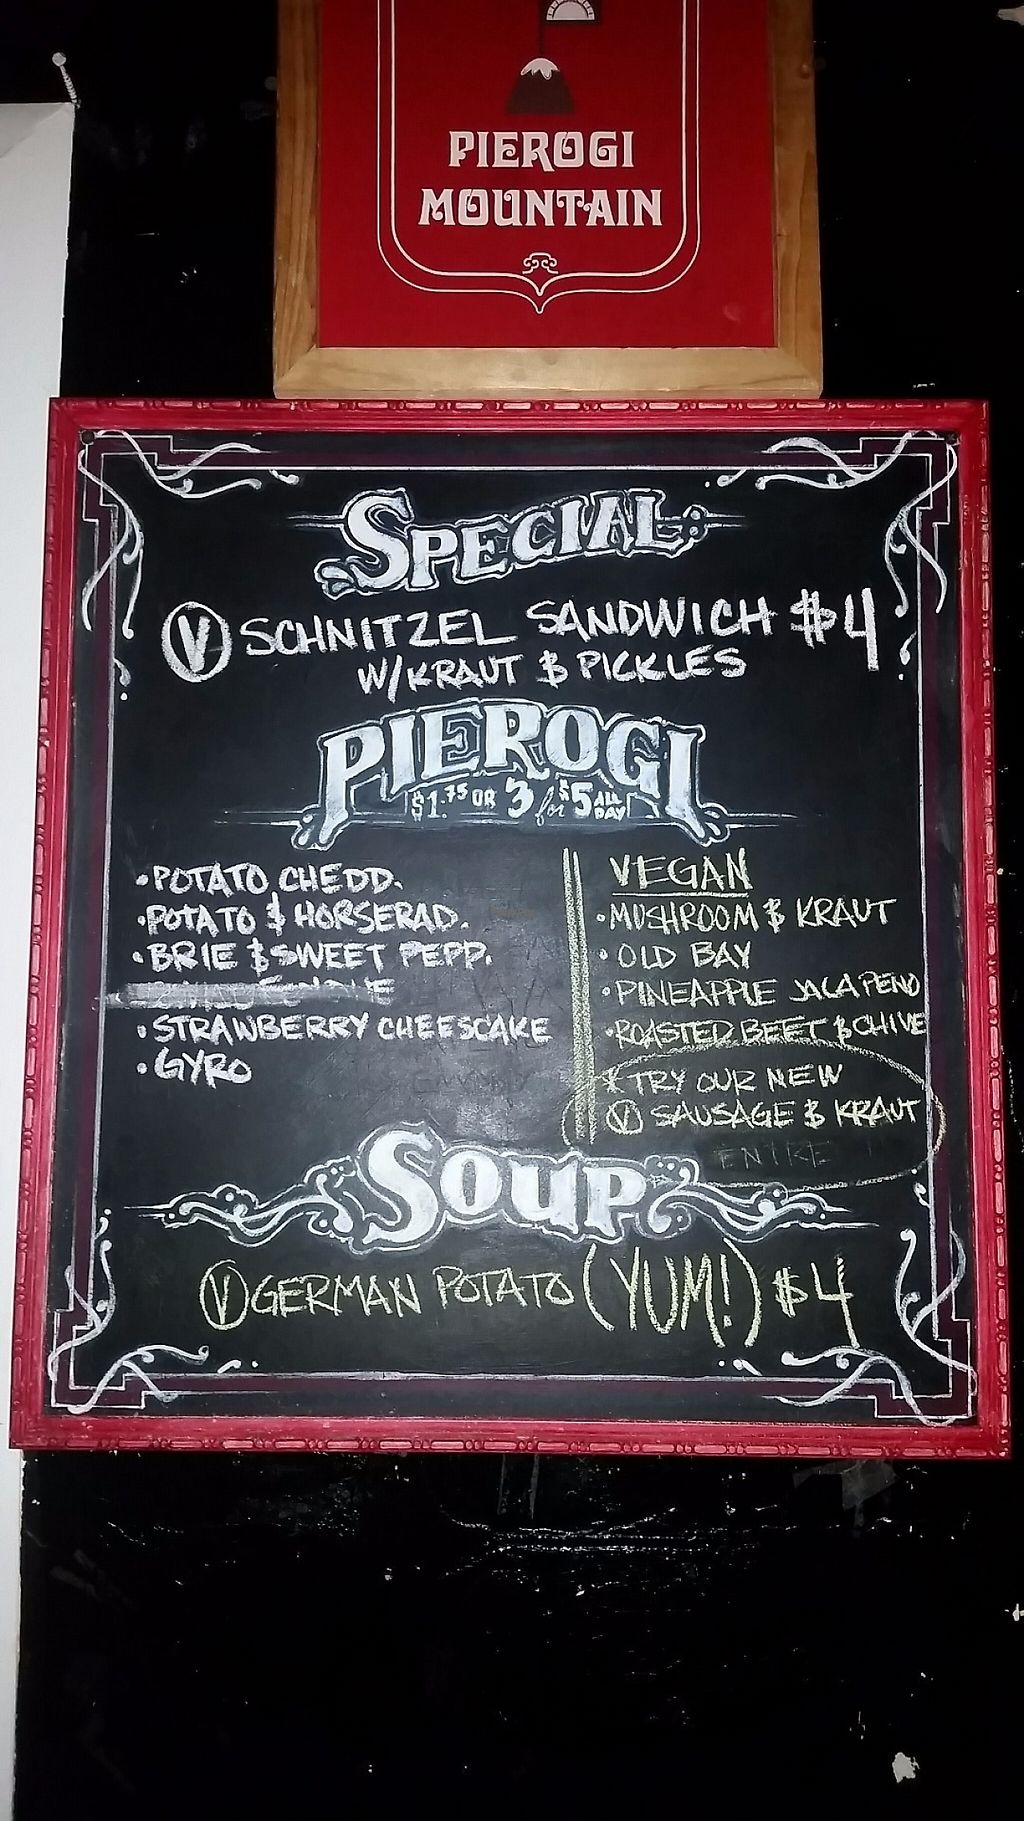 """Photo of Pierogi Mountain  by <a href=""""/members/profile/CorissaMarie"""">CorissaMarie</a> <br/>Labels vegan <br/> February 13, 2017  - <a href='/contact/abuse/image/87122/226329'>Report</a>"""